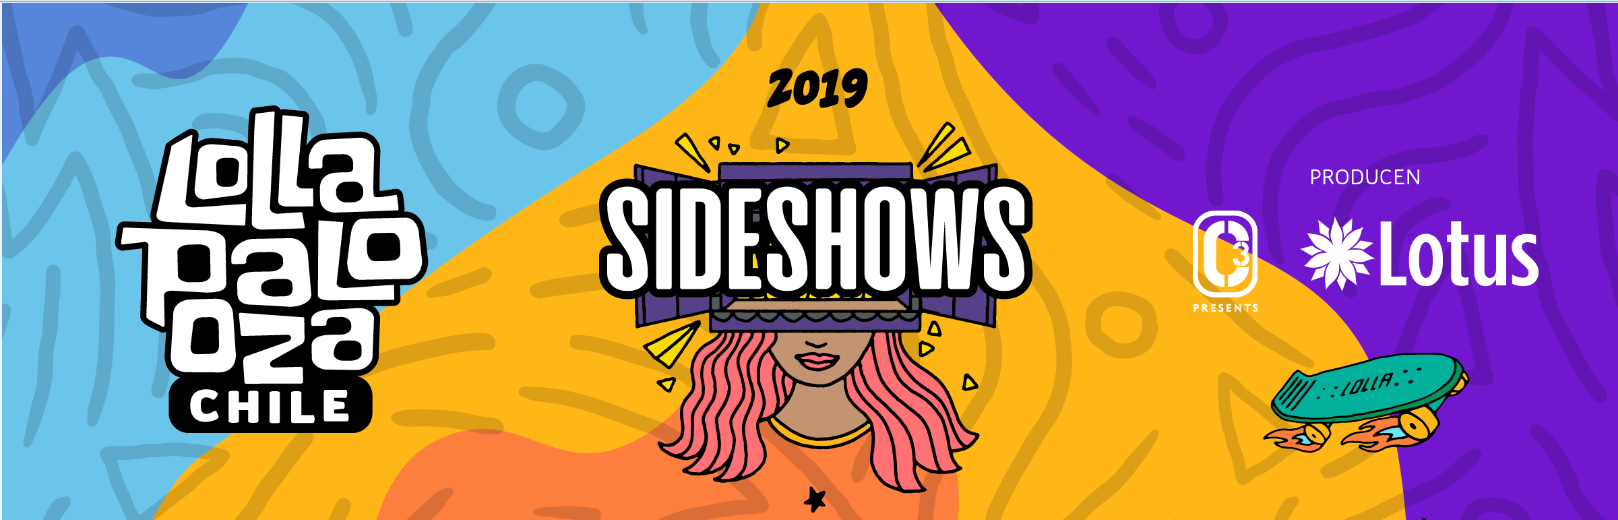 sideshows lollacl 2019